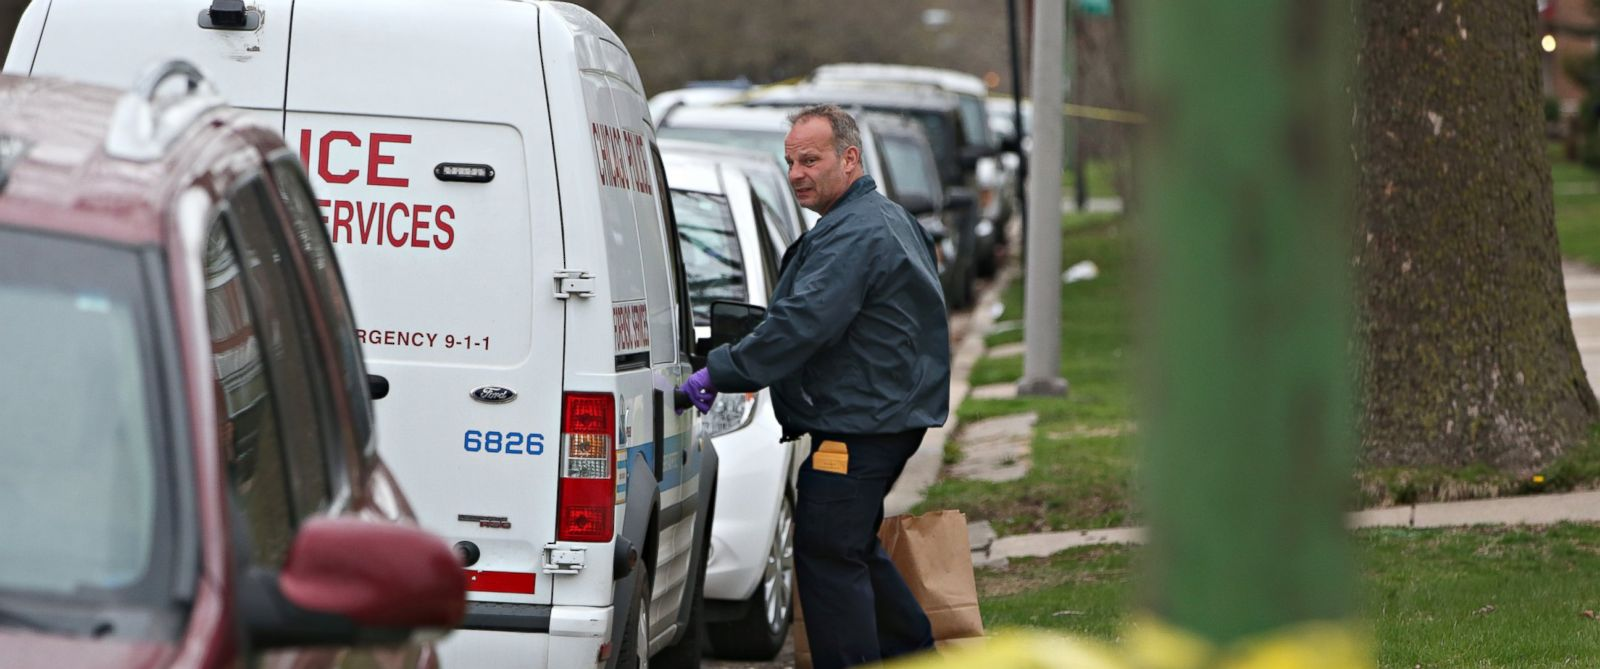 PHOTO: An investigator opens the door of a vehicle outside a home on the South Side of Chicago, April 10, 2017, after Cook County Circuit Court Raymond Myles was shot to death outside his home.